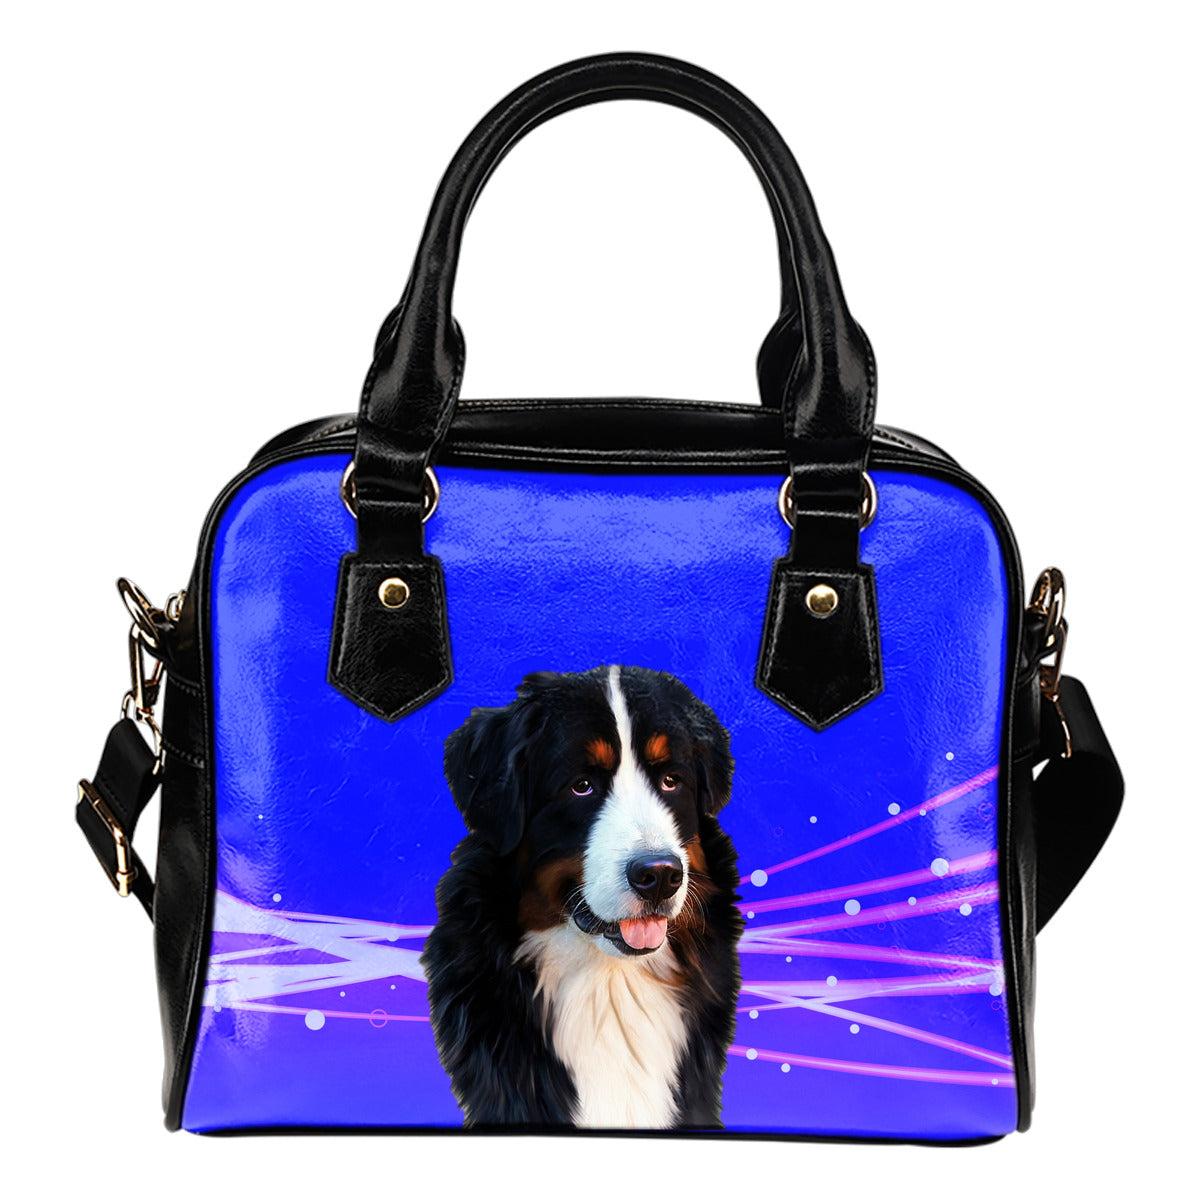 Bernese Mountain Dog Shoulder Bag - Blue